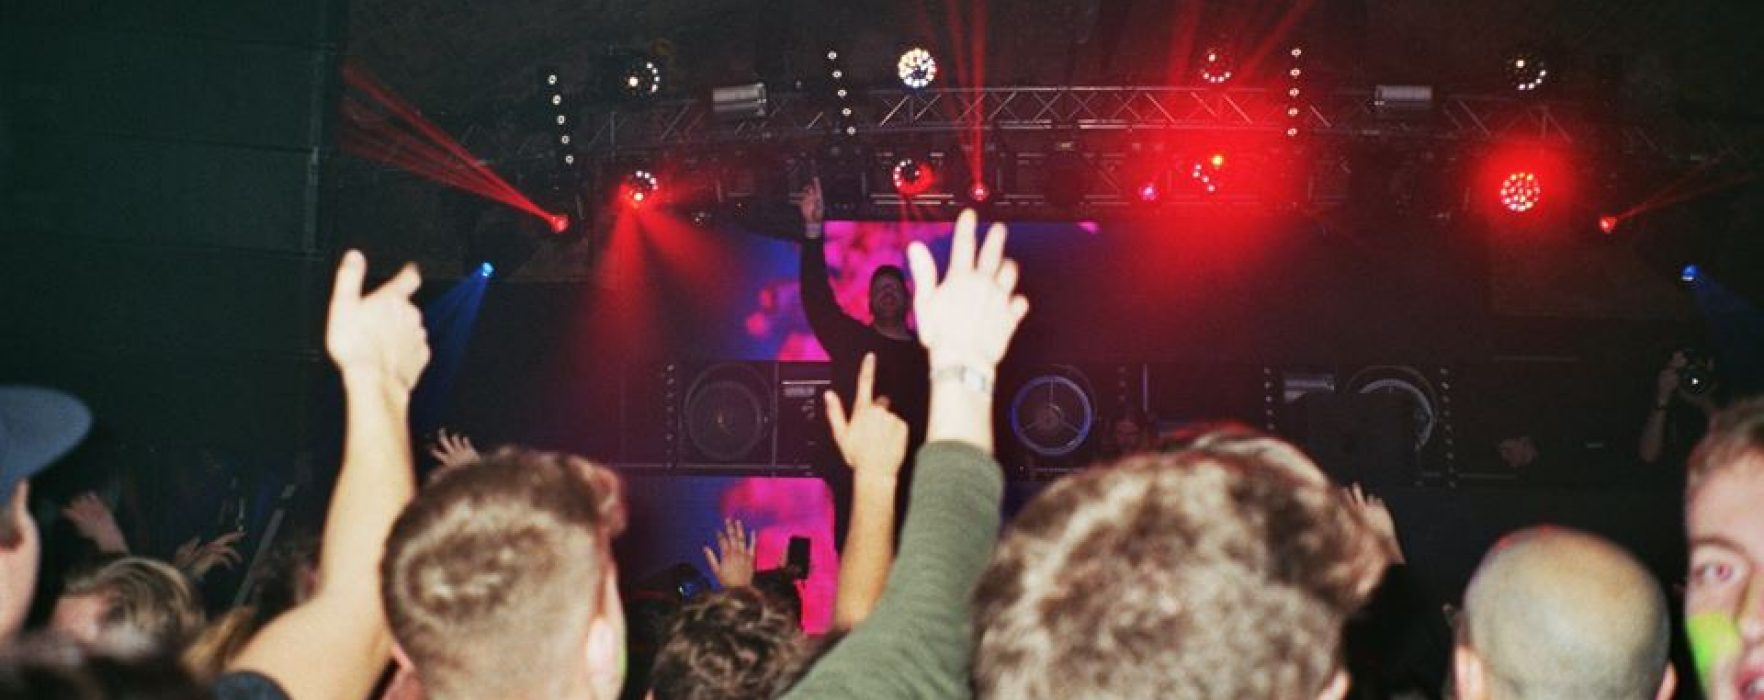 Manchester's top Drum and Bass events for 2018